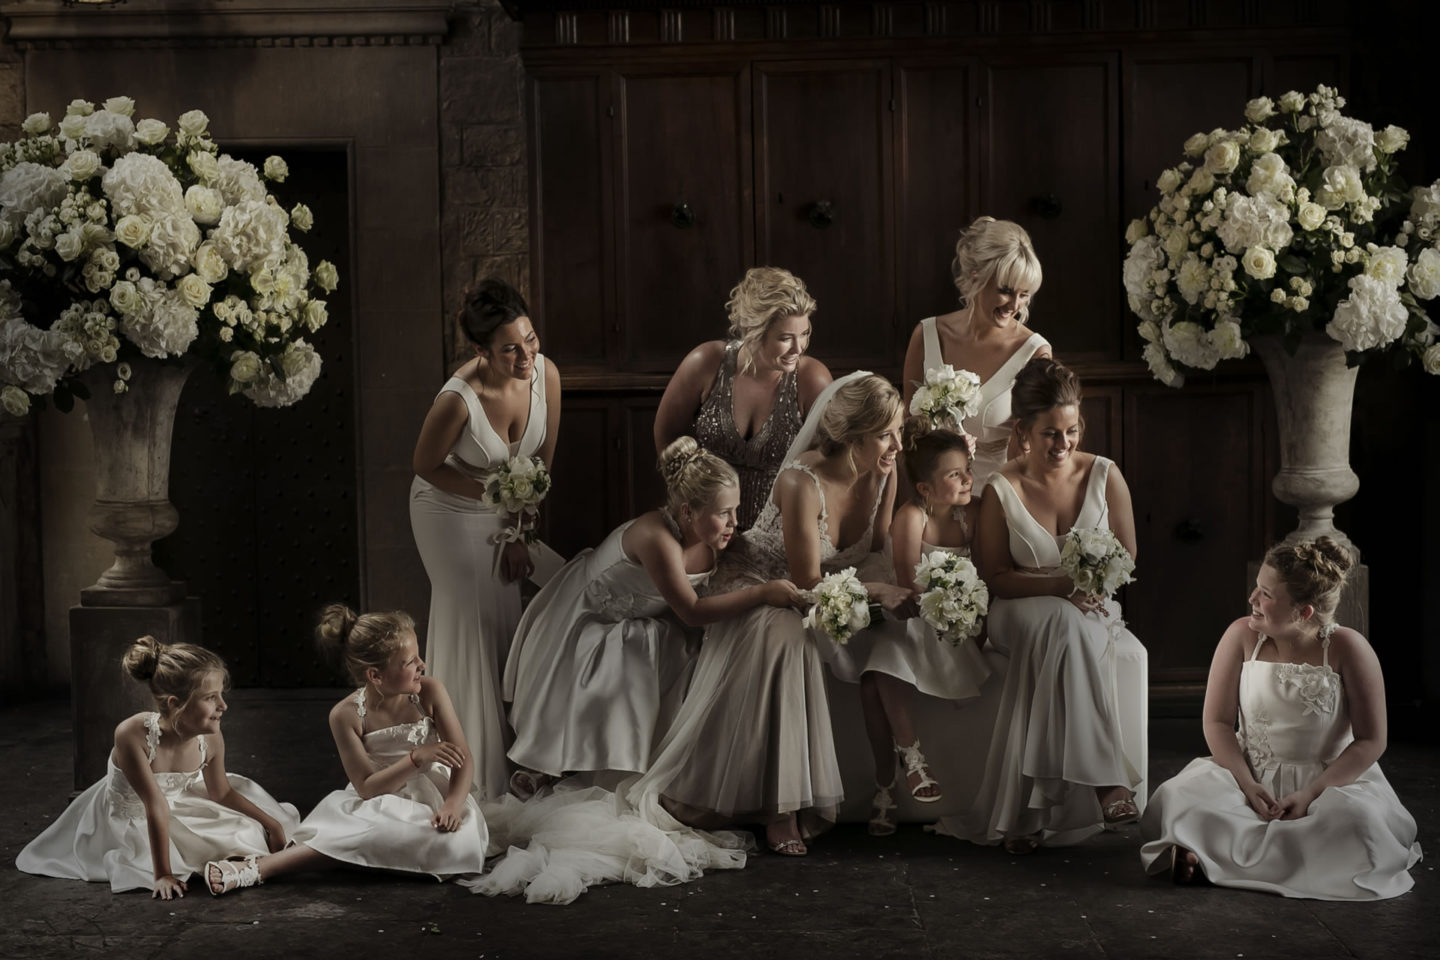 Weddingparty :: Groups Bridal Parties :: David Bastianoni wedding photographer